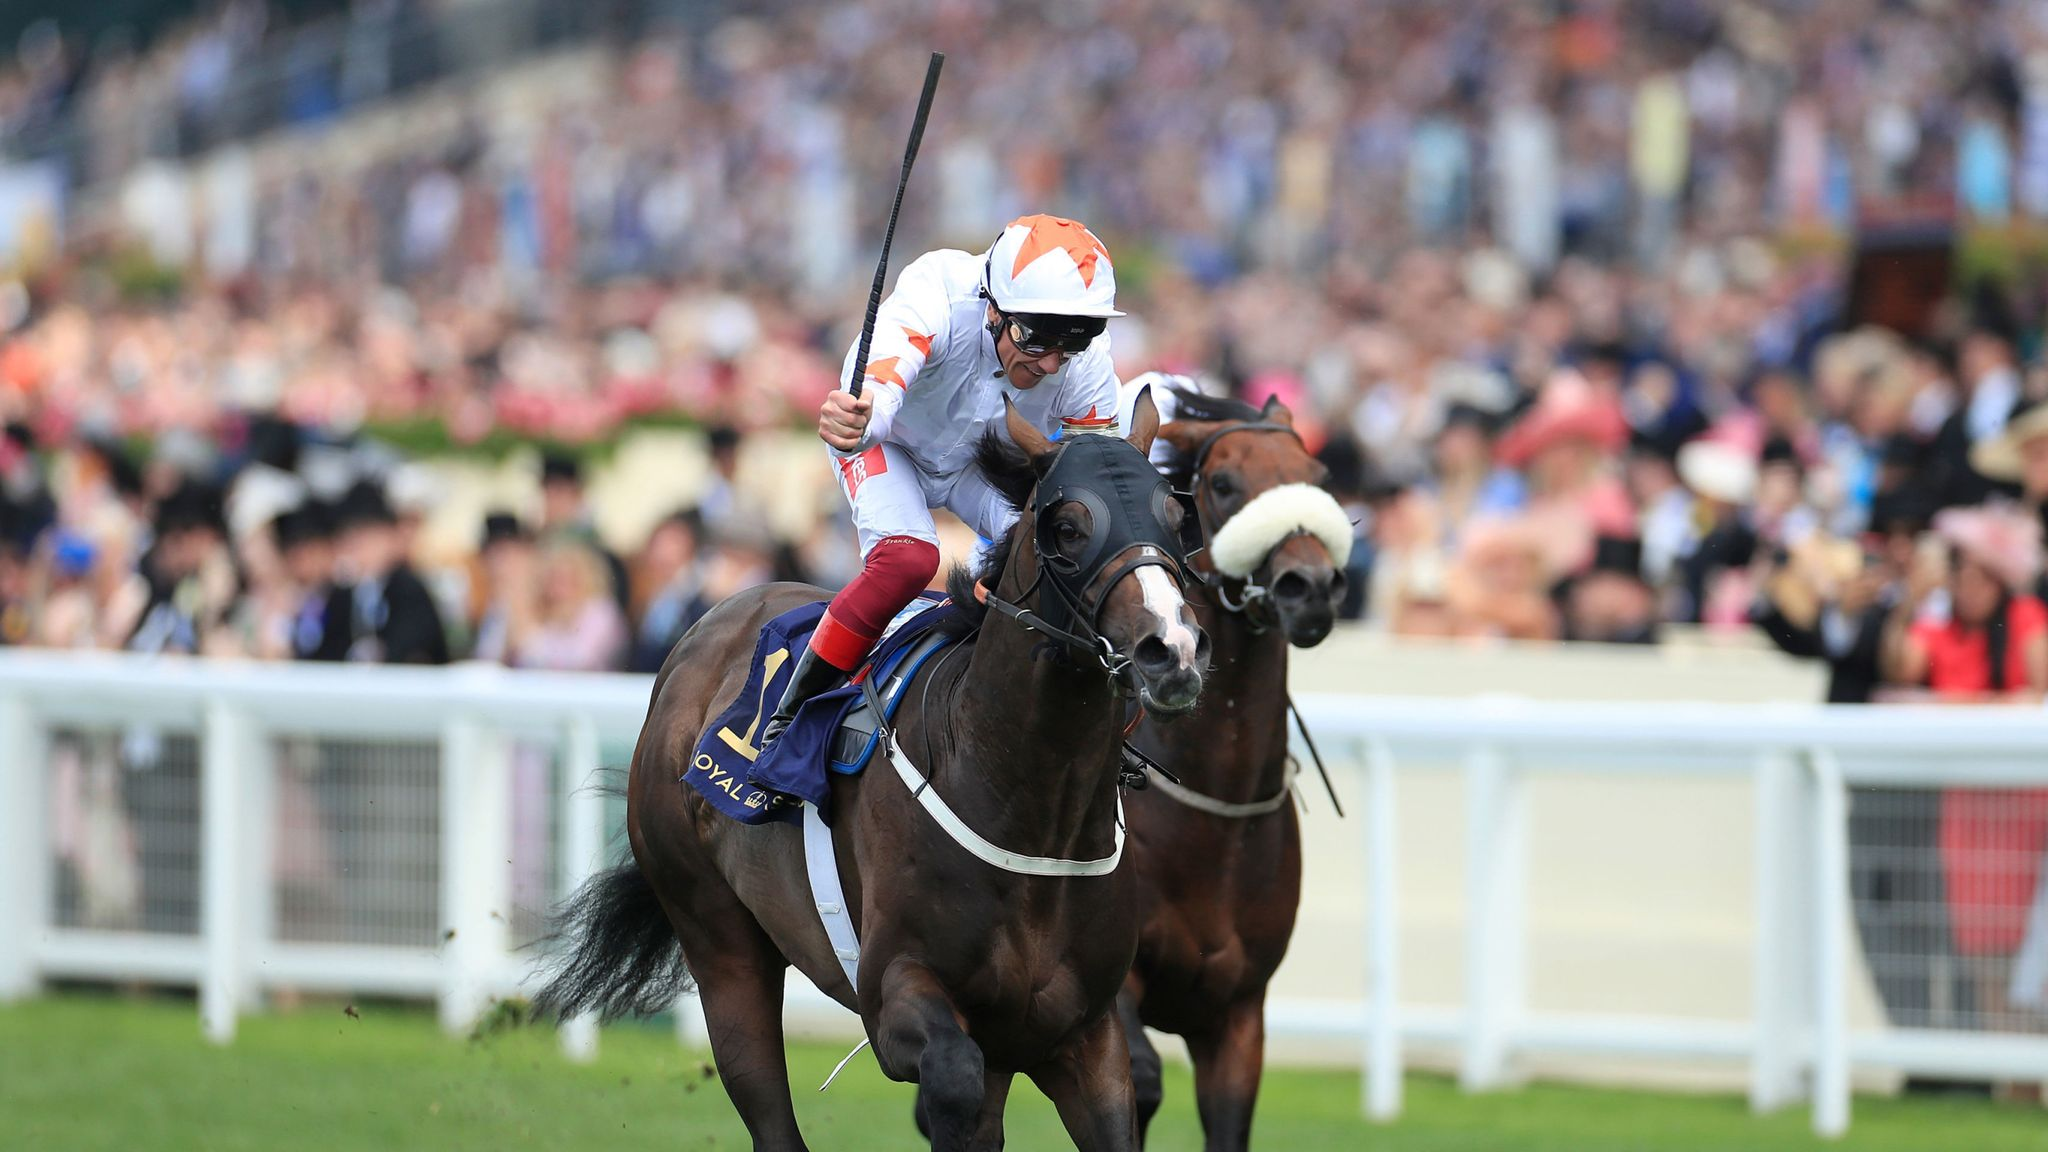 Advertise ready to return to action at Ascot